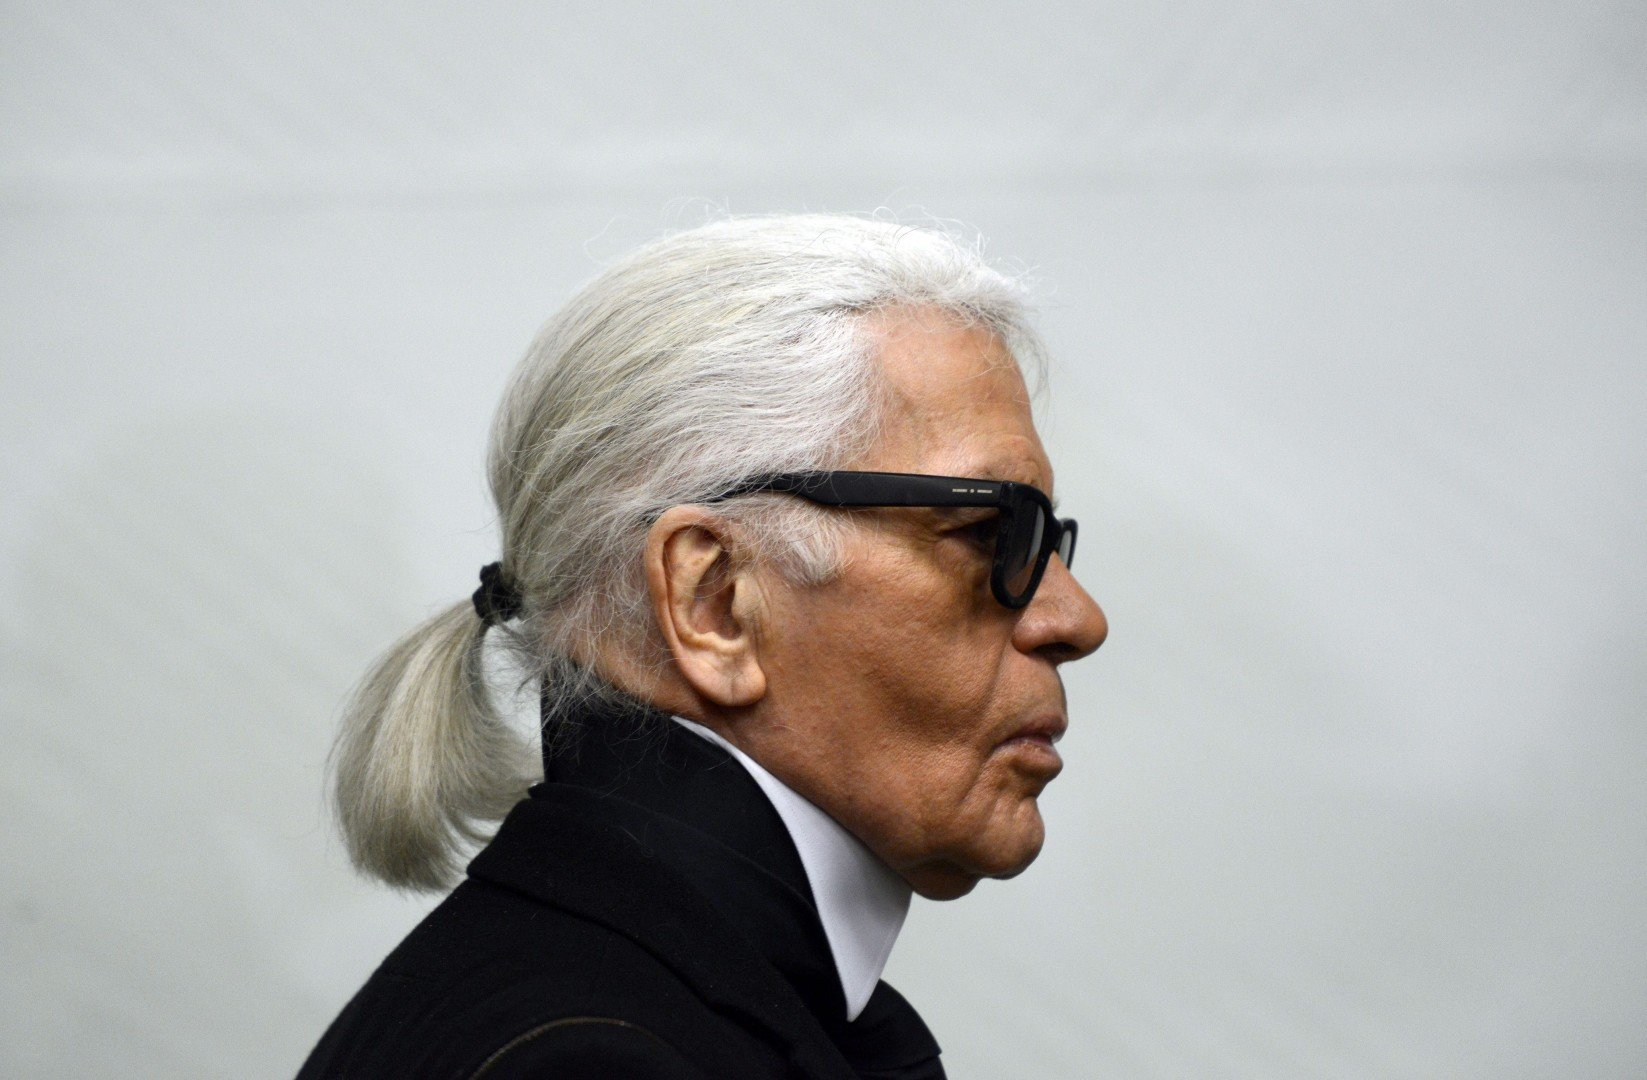 1c9743c43 Karl Lagerfeld was fashion's undisputed master, a dream maker who turned  Chanel into a global force | South China Morning Post